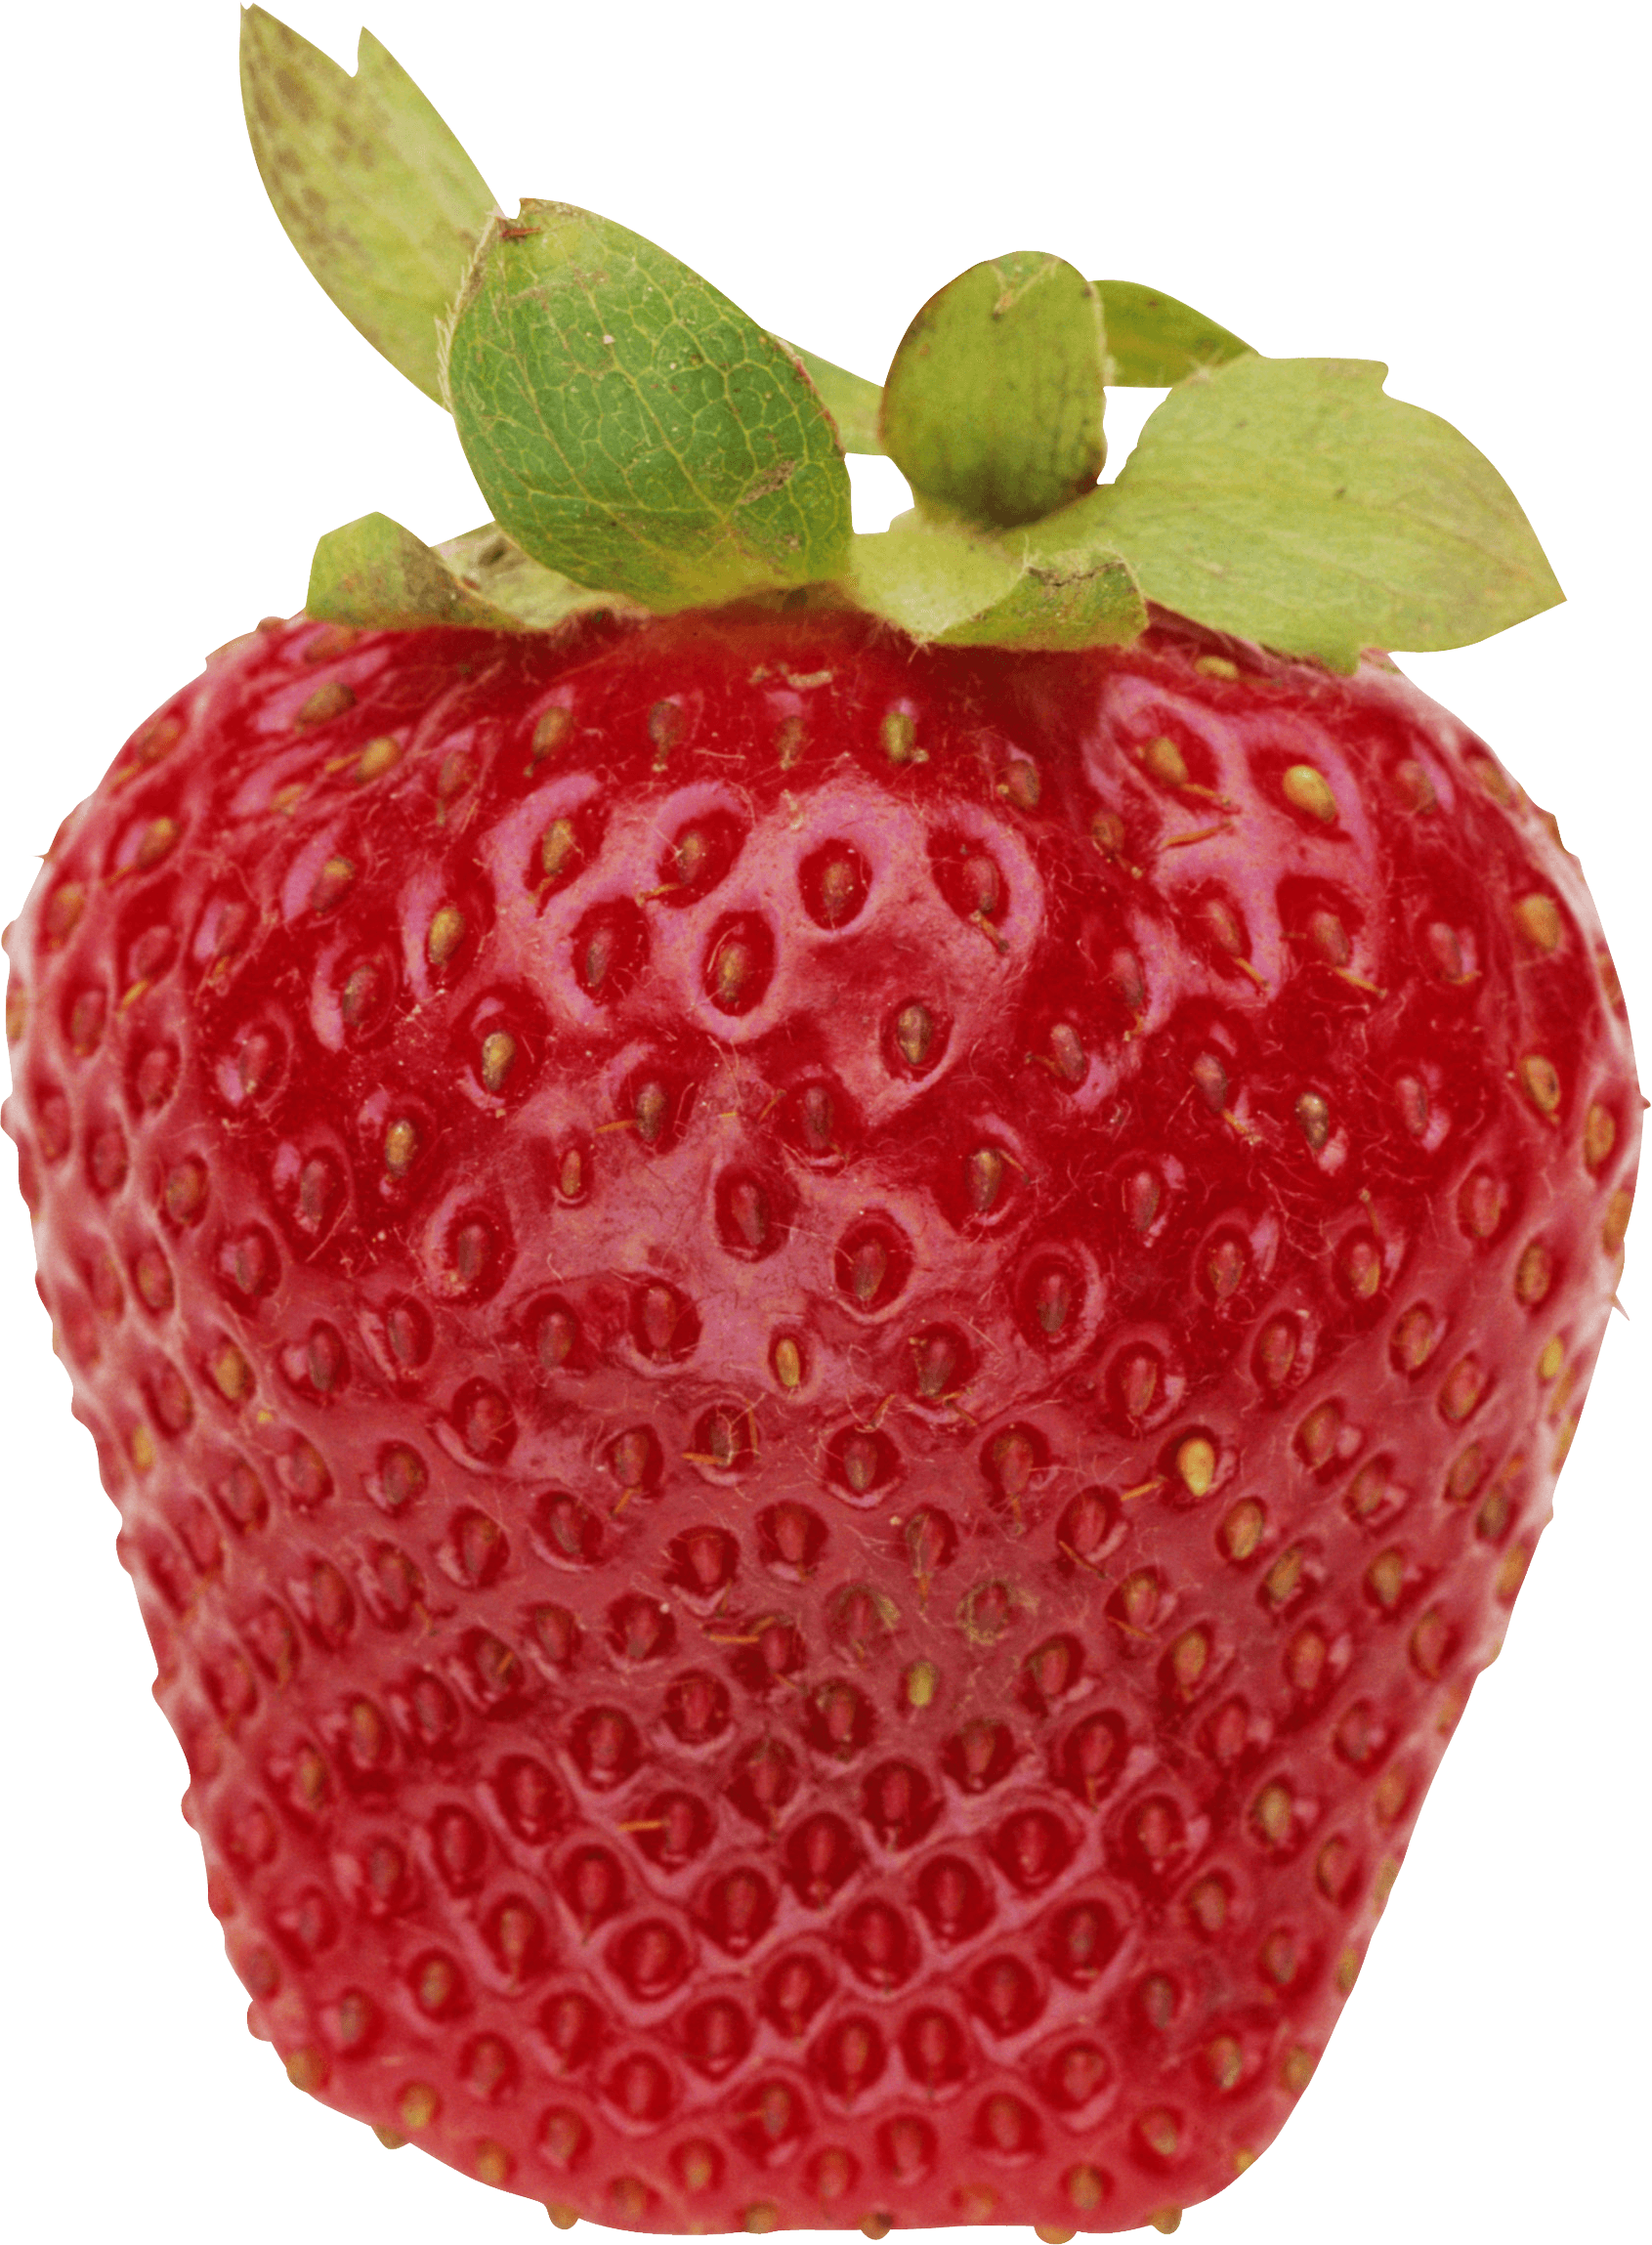 Strawberry Png Images PNG Image - Strawberry PNG